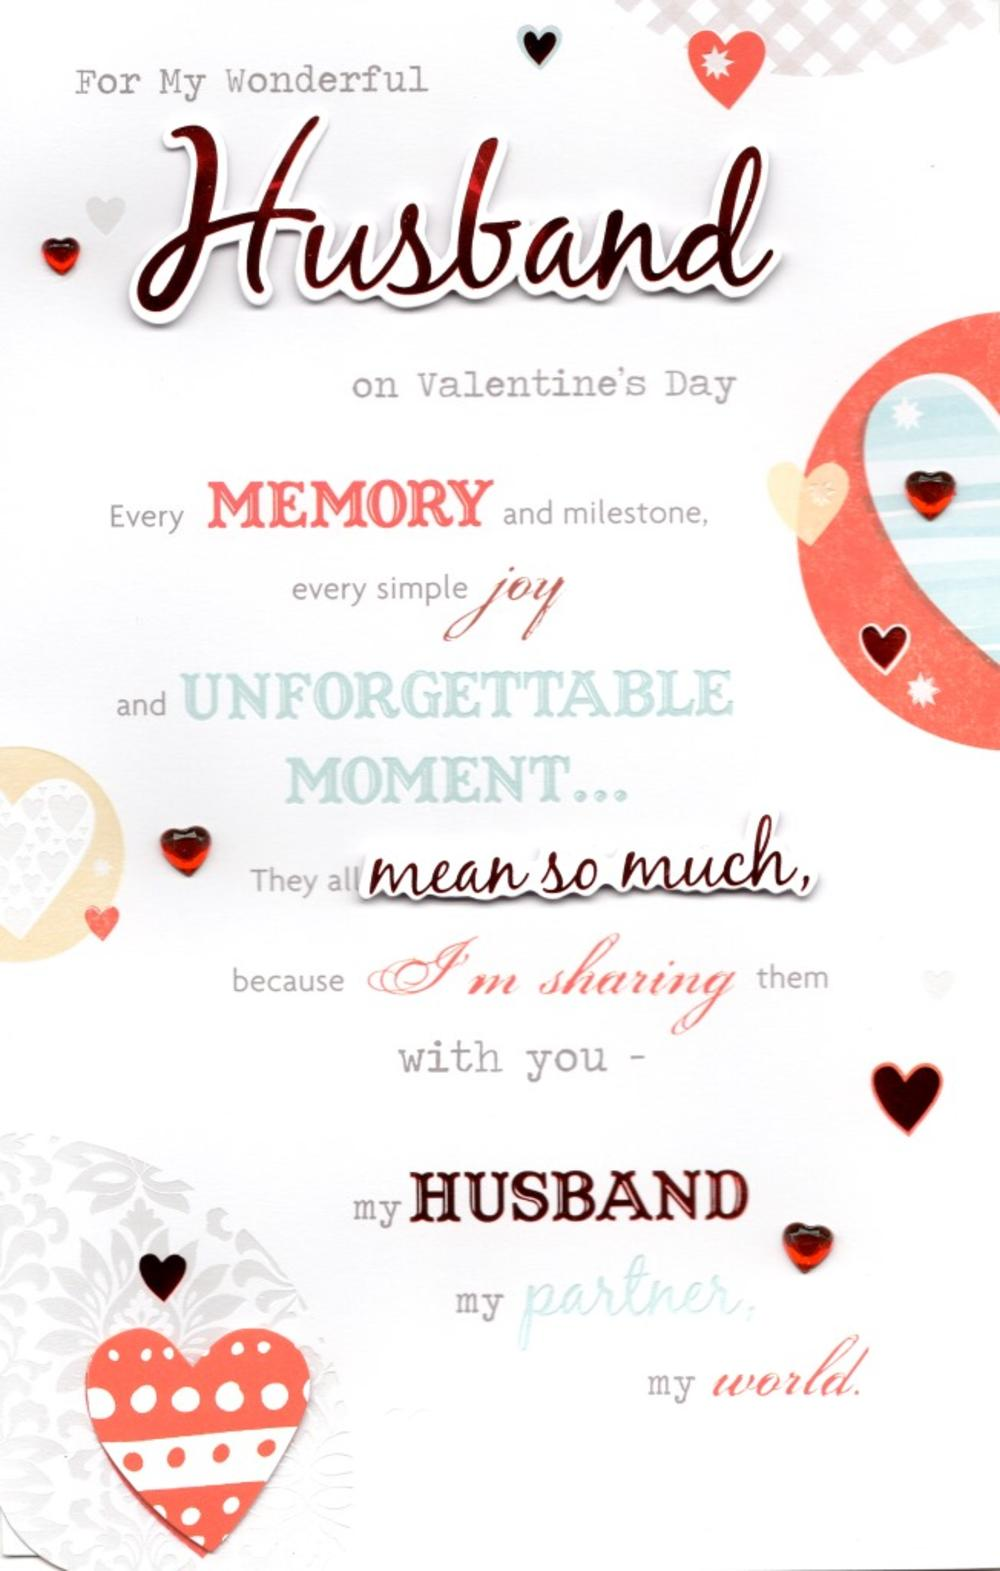 husband valentine's day greeting card | cards | love kates, Ideas